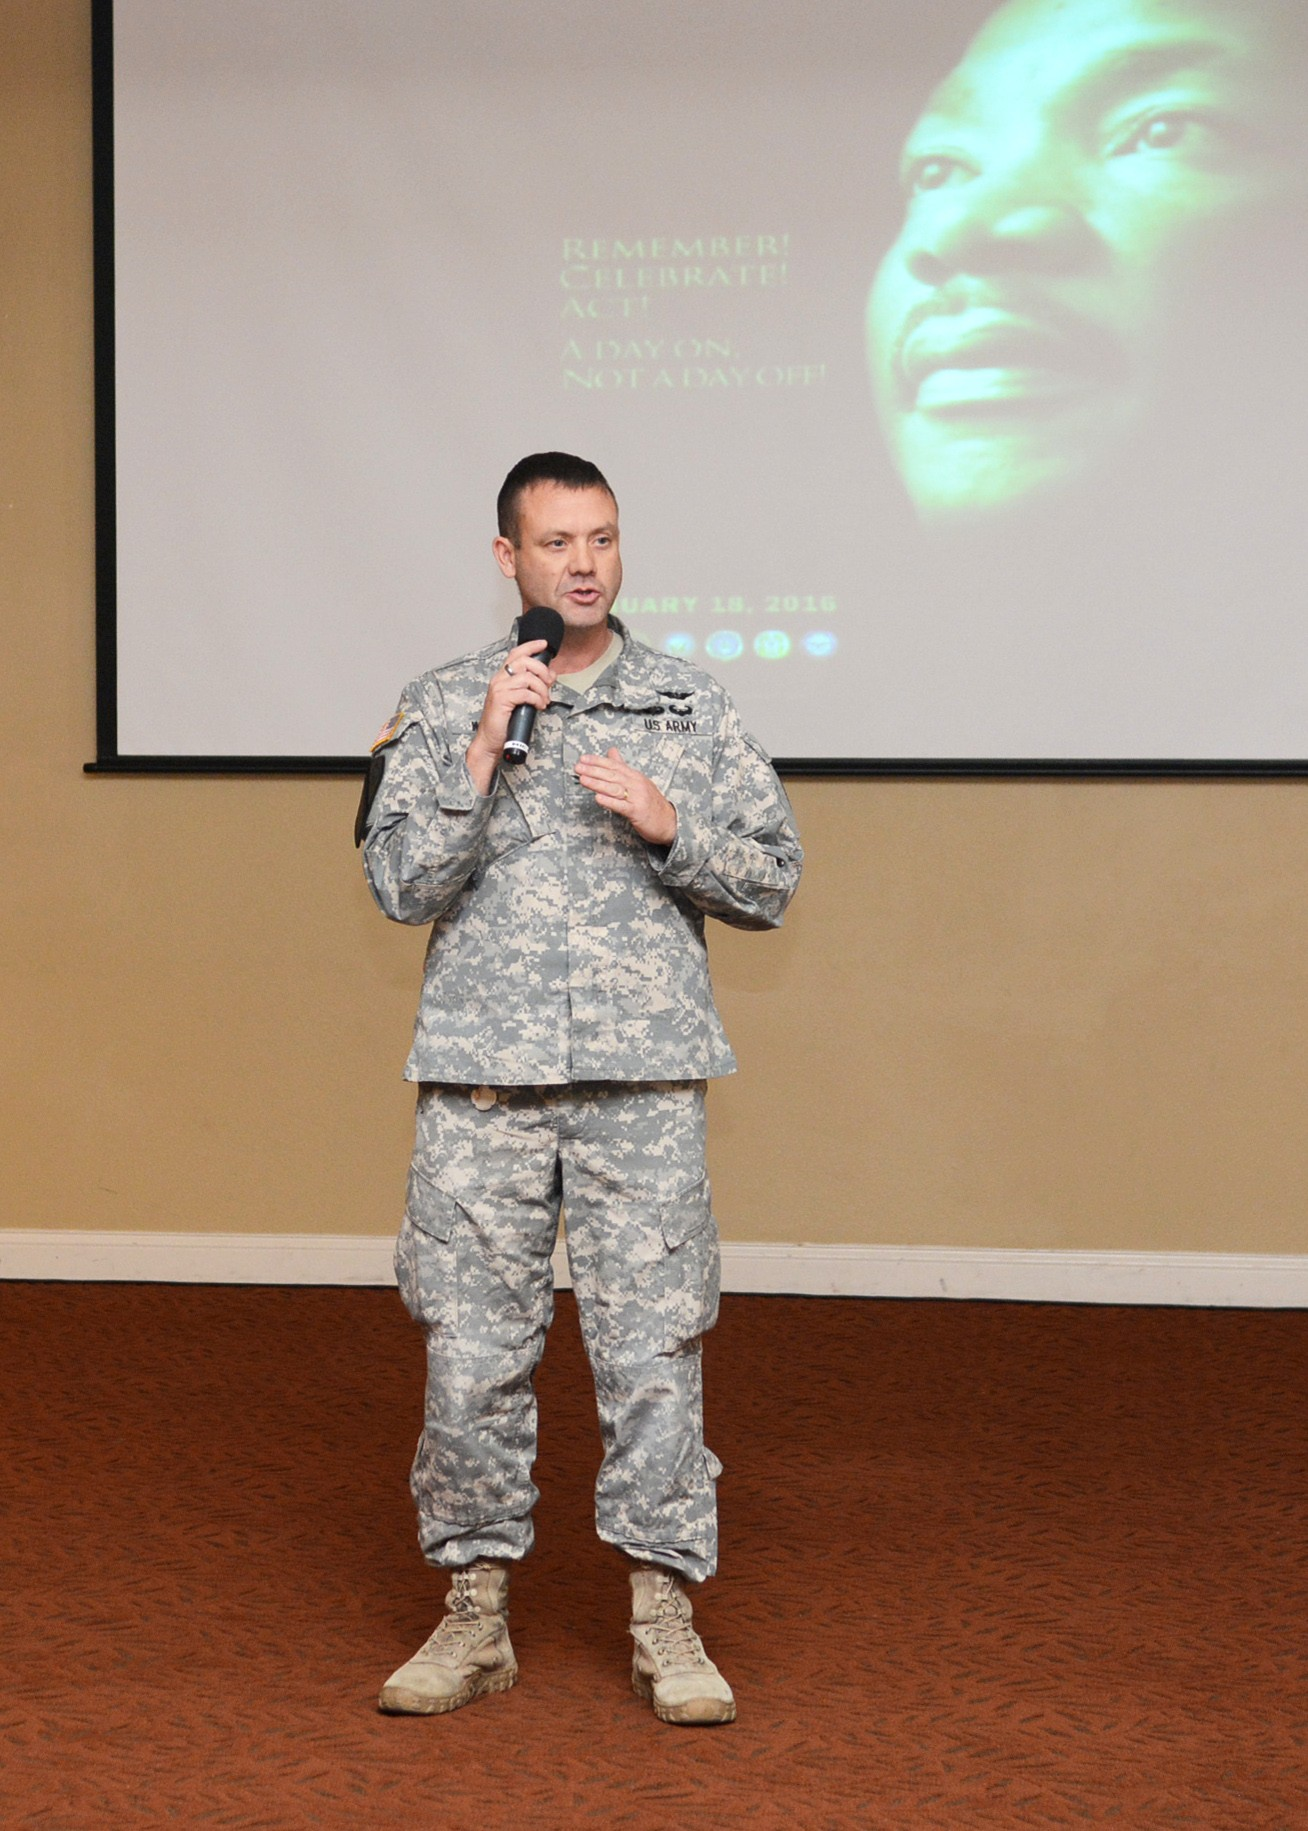 ... Irwin United States Army Medical Department Activity Commander Col. Jason Wieman speaks at a 2016 Martin Luther King Jr. Day celebration, Jan. 6.